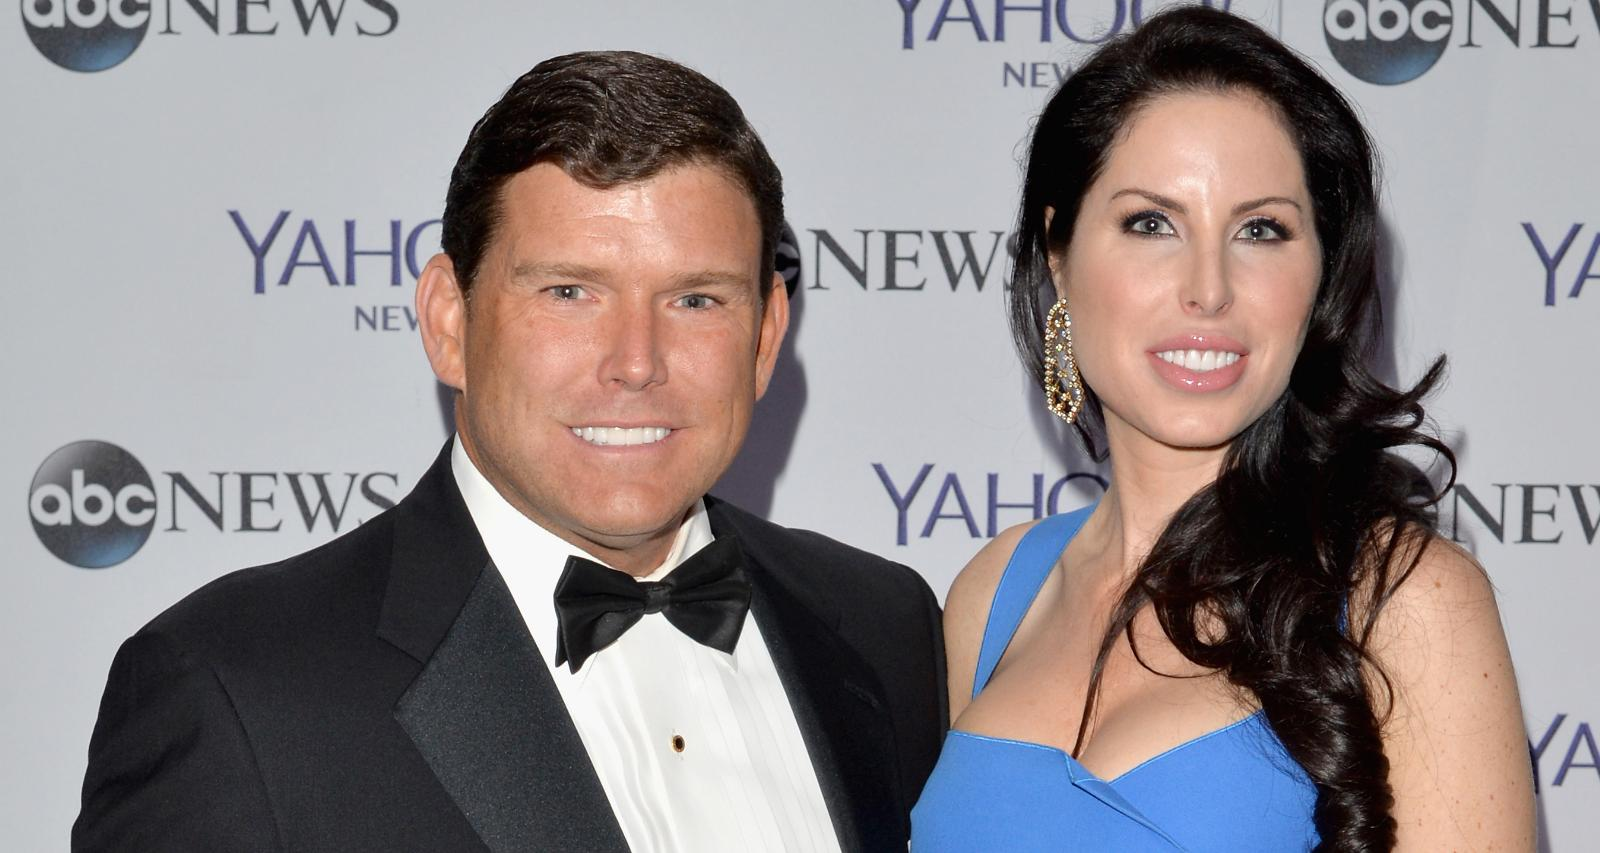 Bret Baier with his wife Amy Baier